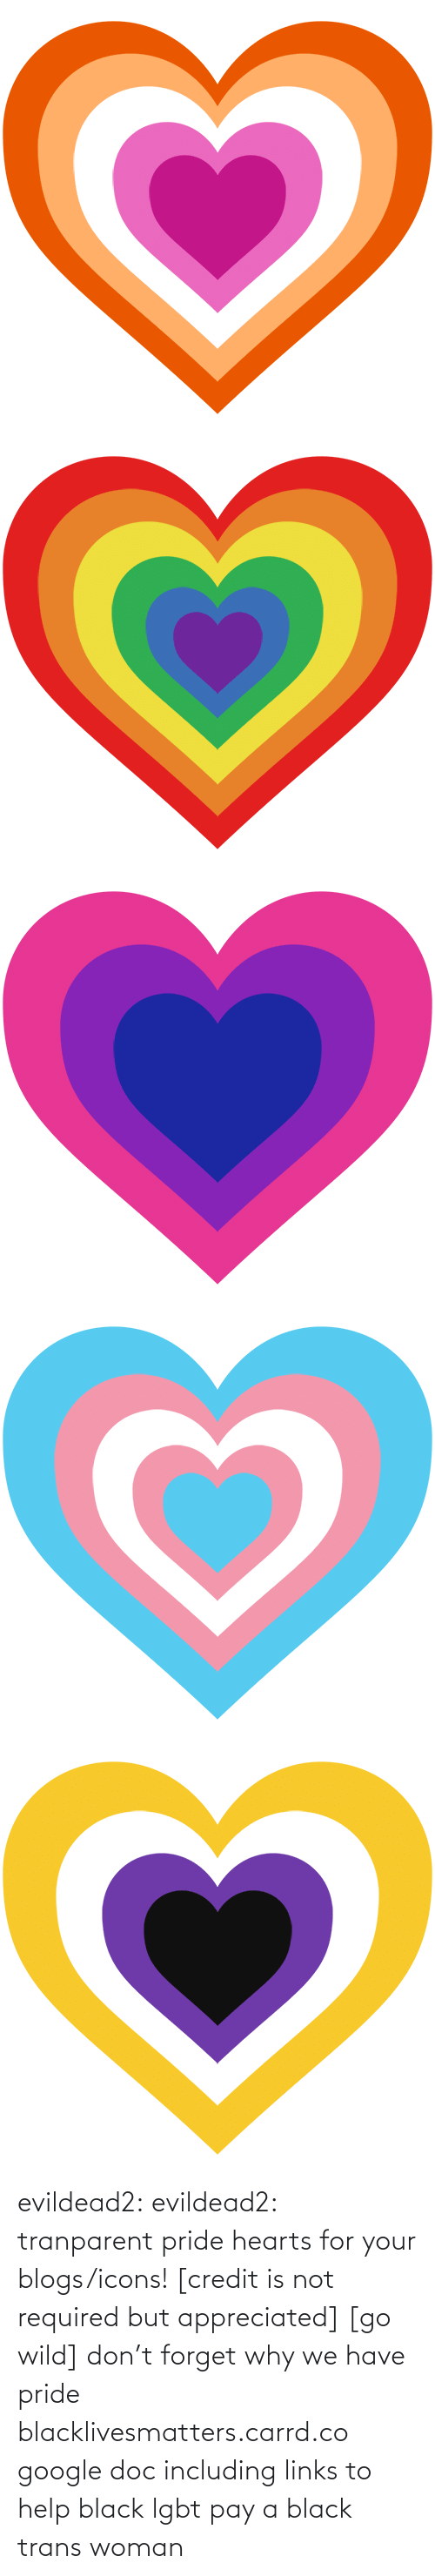 LGBT: evildead2:  evildead2:  tranparent pride hearts for your blogs/icons! [credit is not required but appreciated] [go wild]      don't forget why we have pride  blacklivesmatters.carrd.co  google doc including links to help black lgbt pay a black trans woman